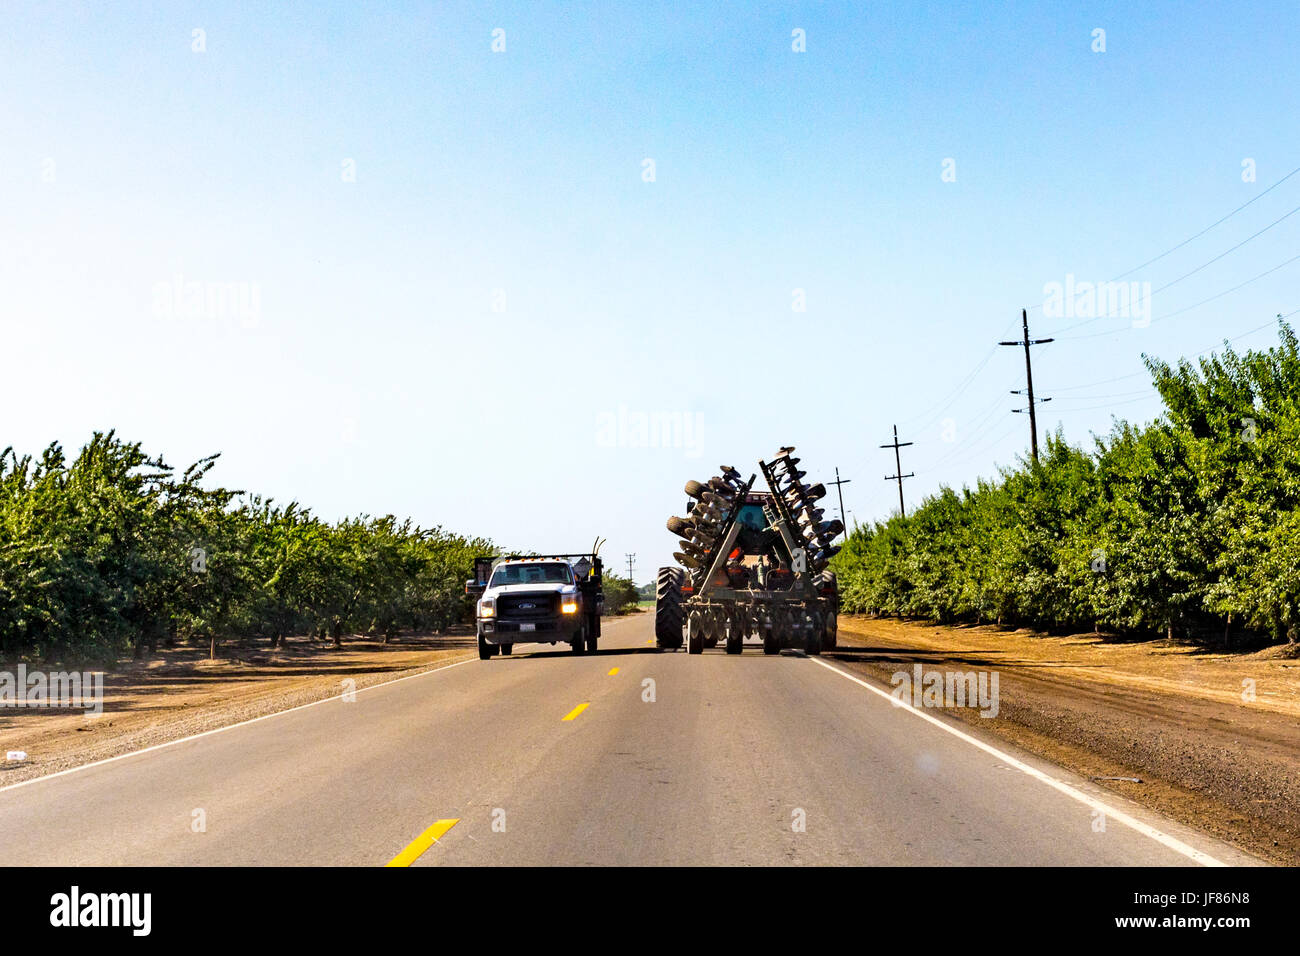 A very large tractor with disc attachment on River Road in Stanislaus County California USA - Stock Image